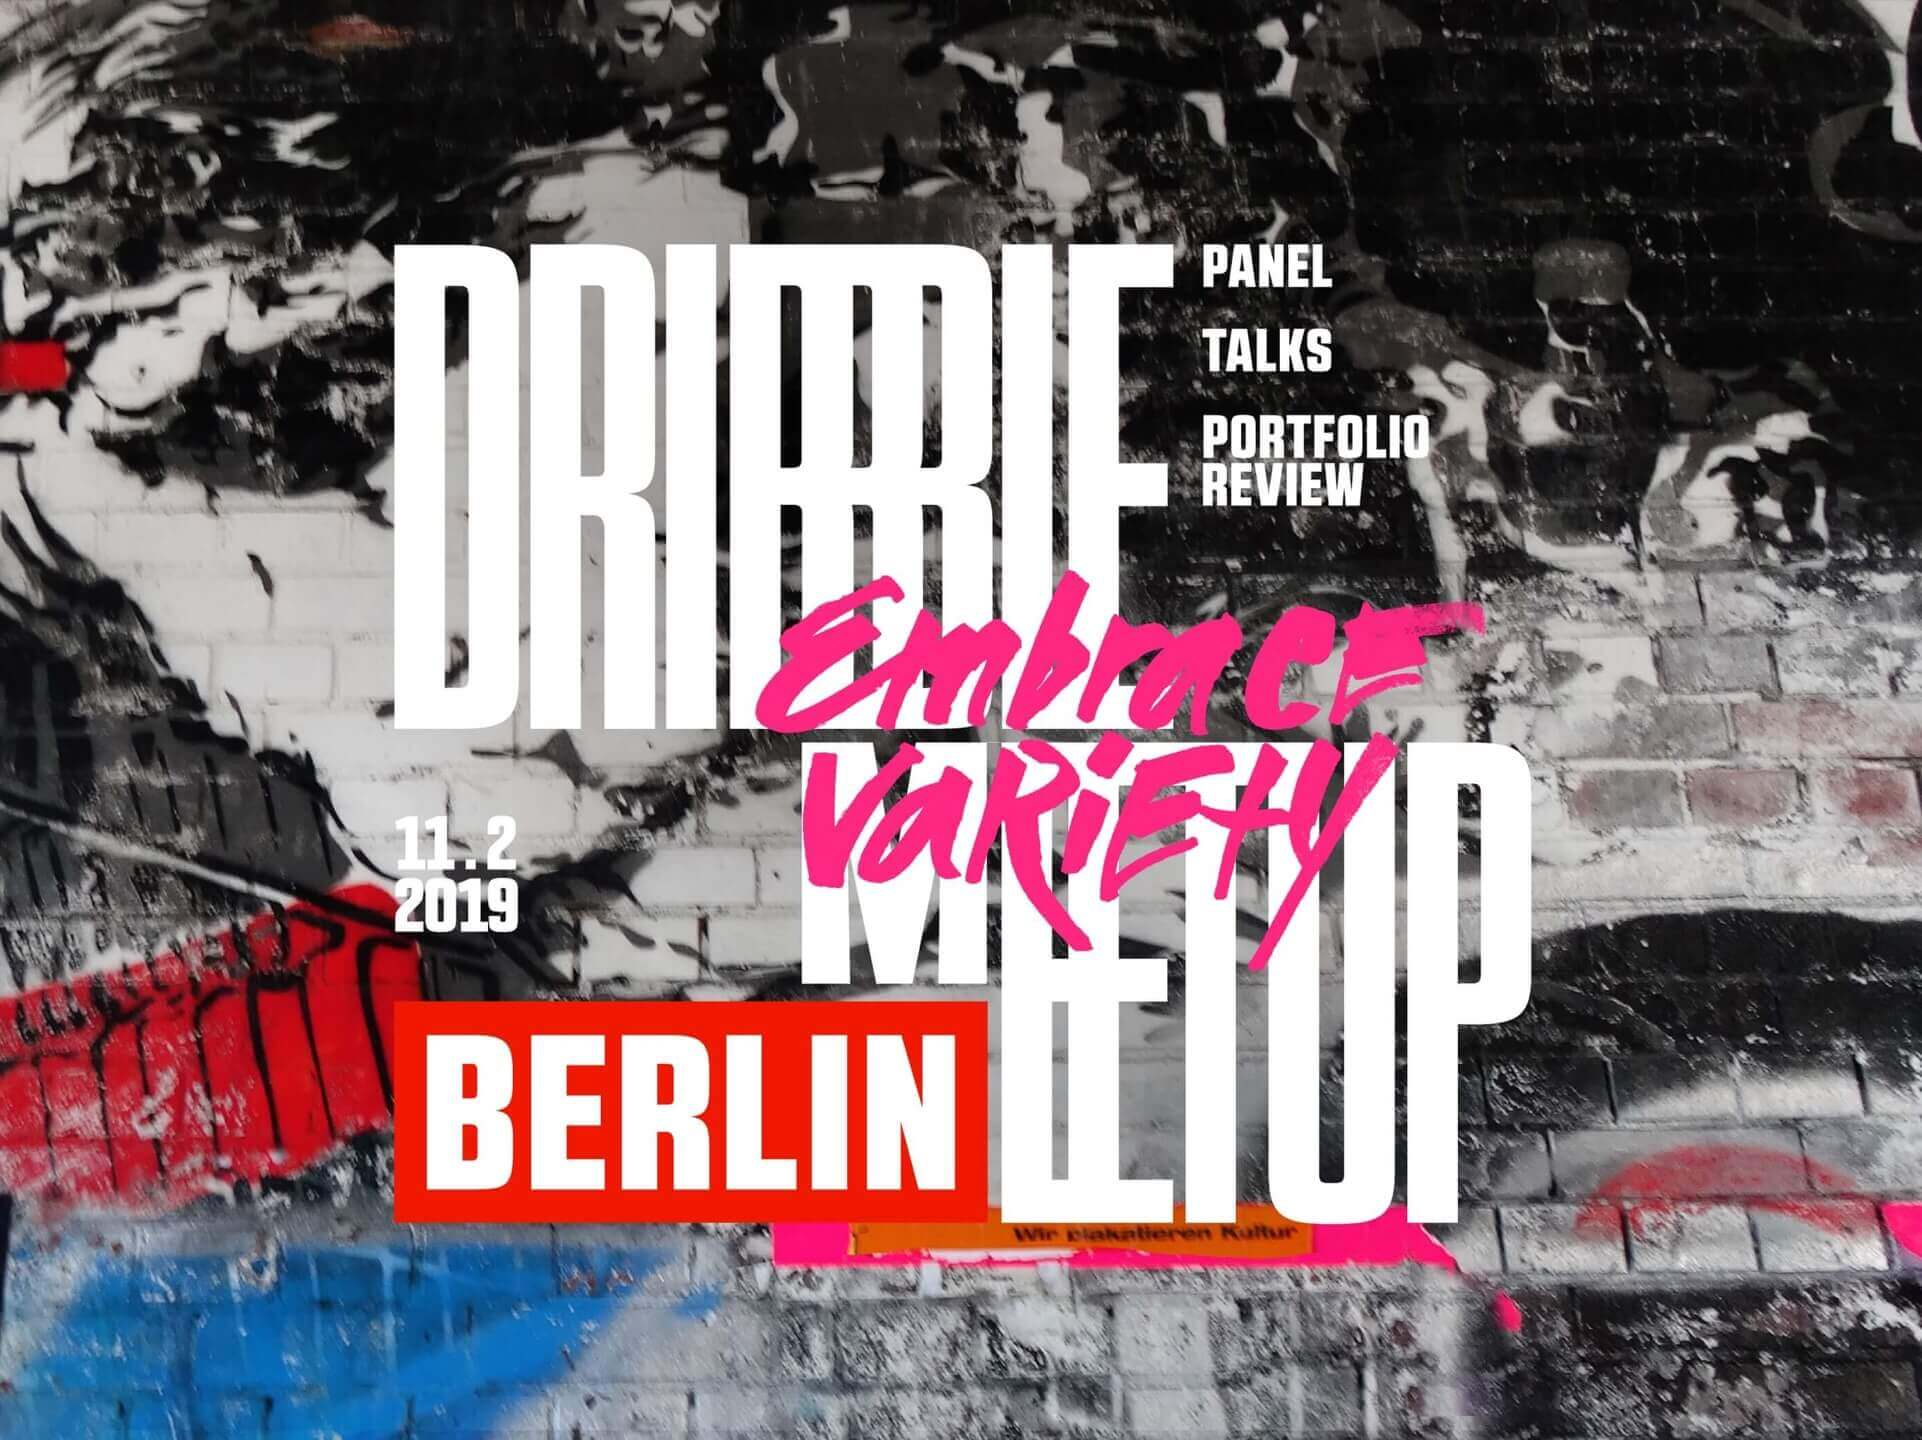 Dribbble-berlin-Dwebdesign1-Nezhynska-01